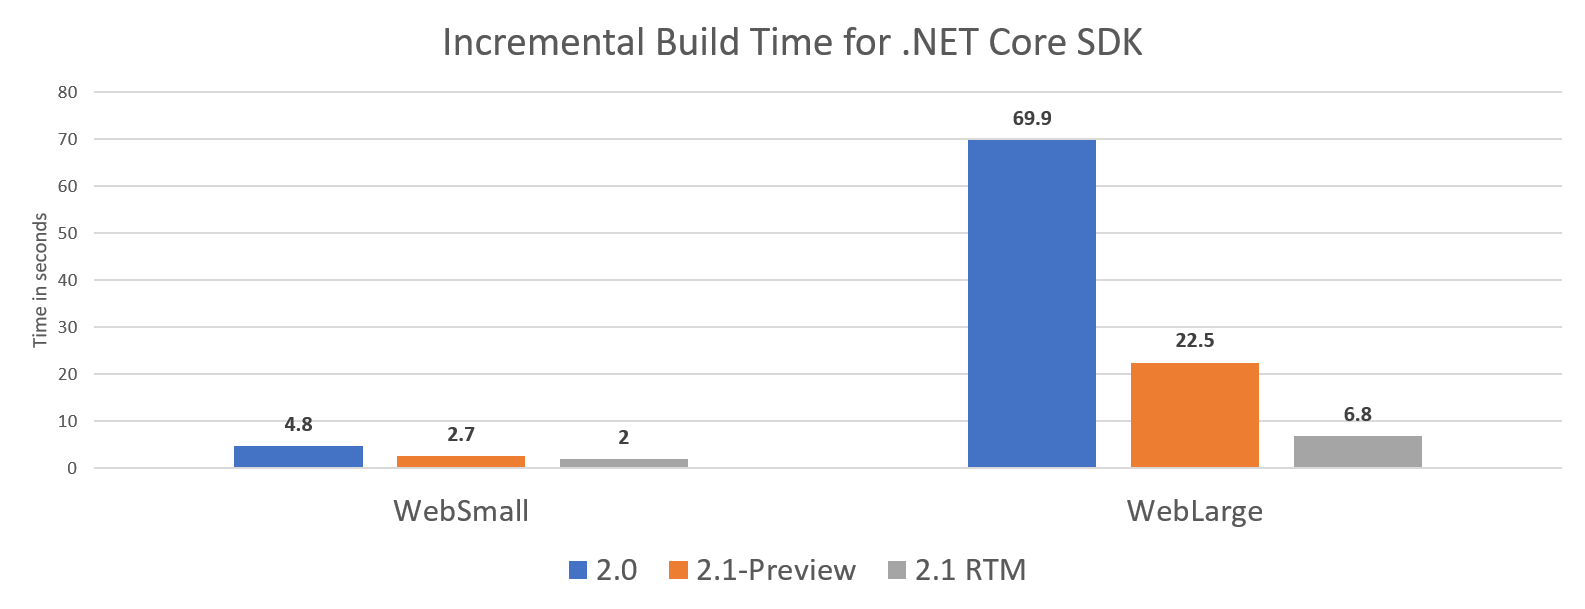 Incremental Build Improvements for .NET Core 2.1 SDK